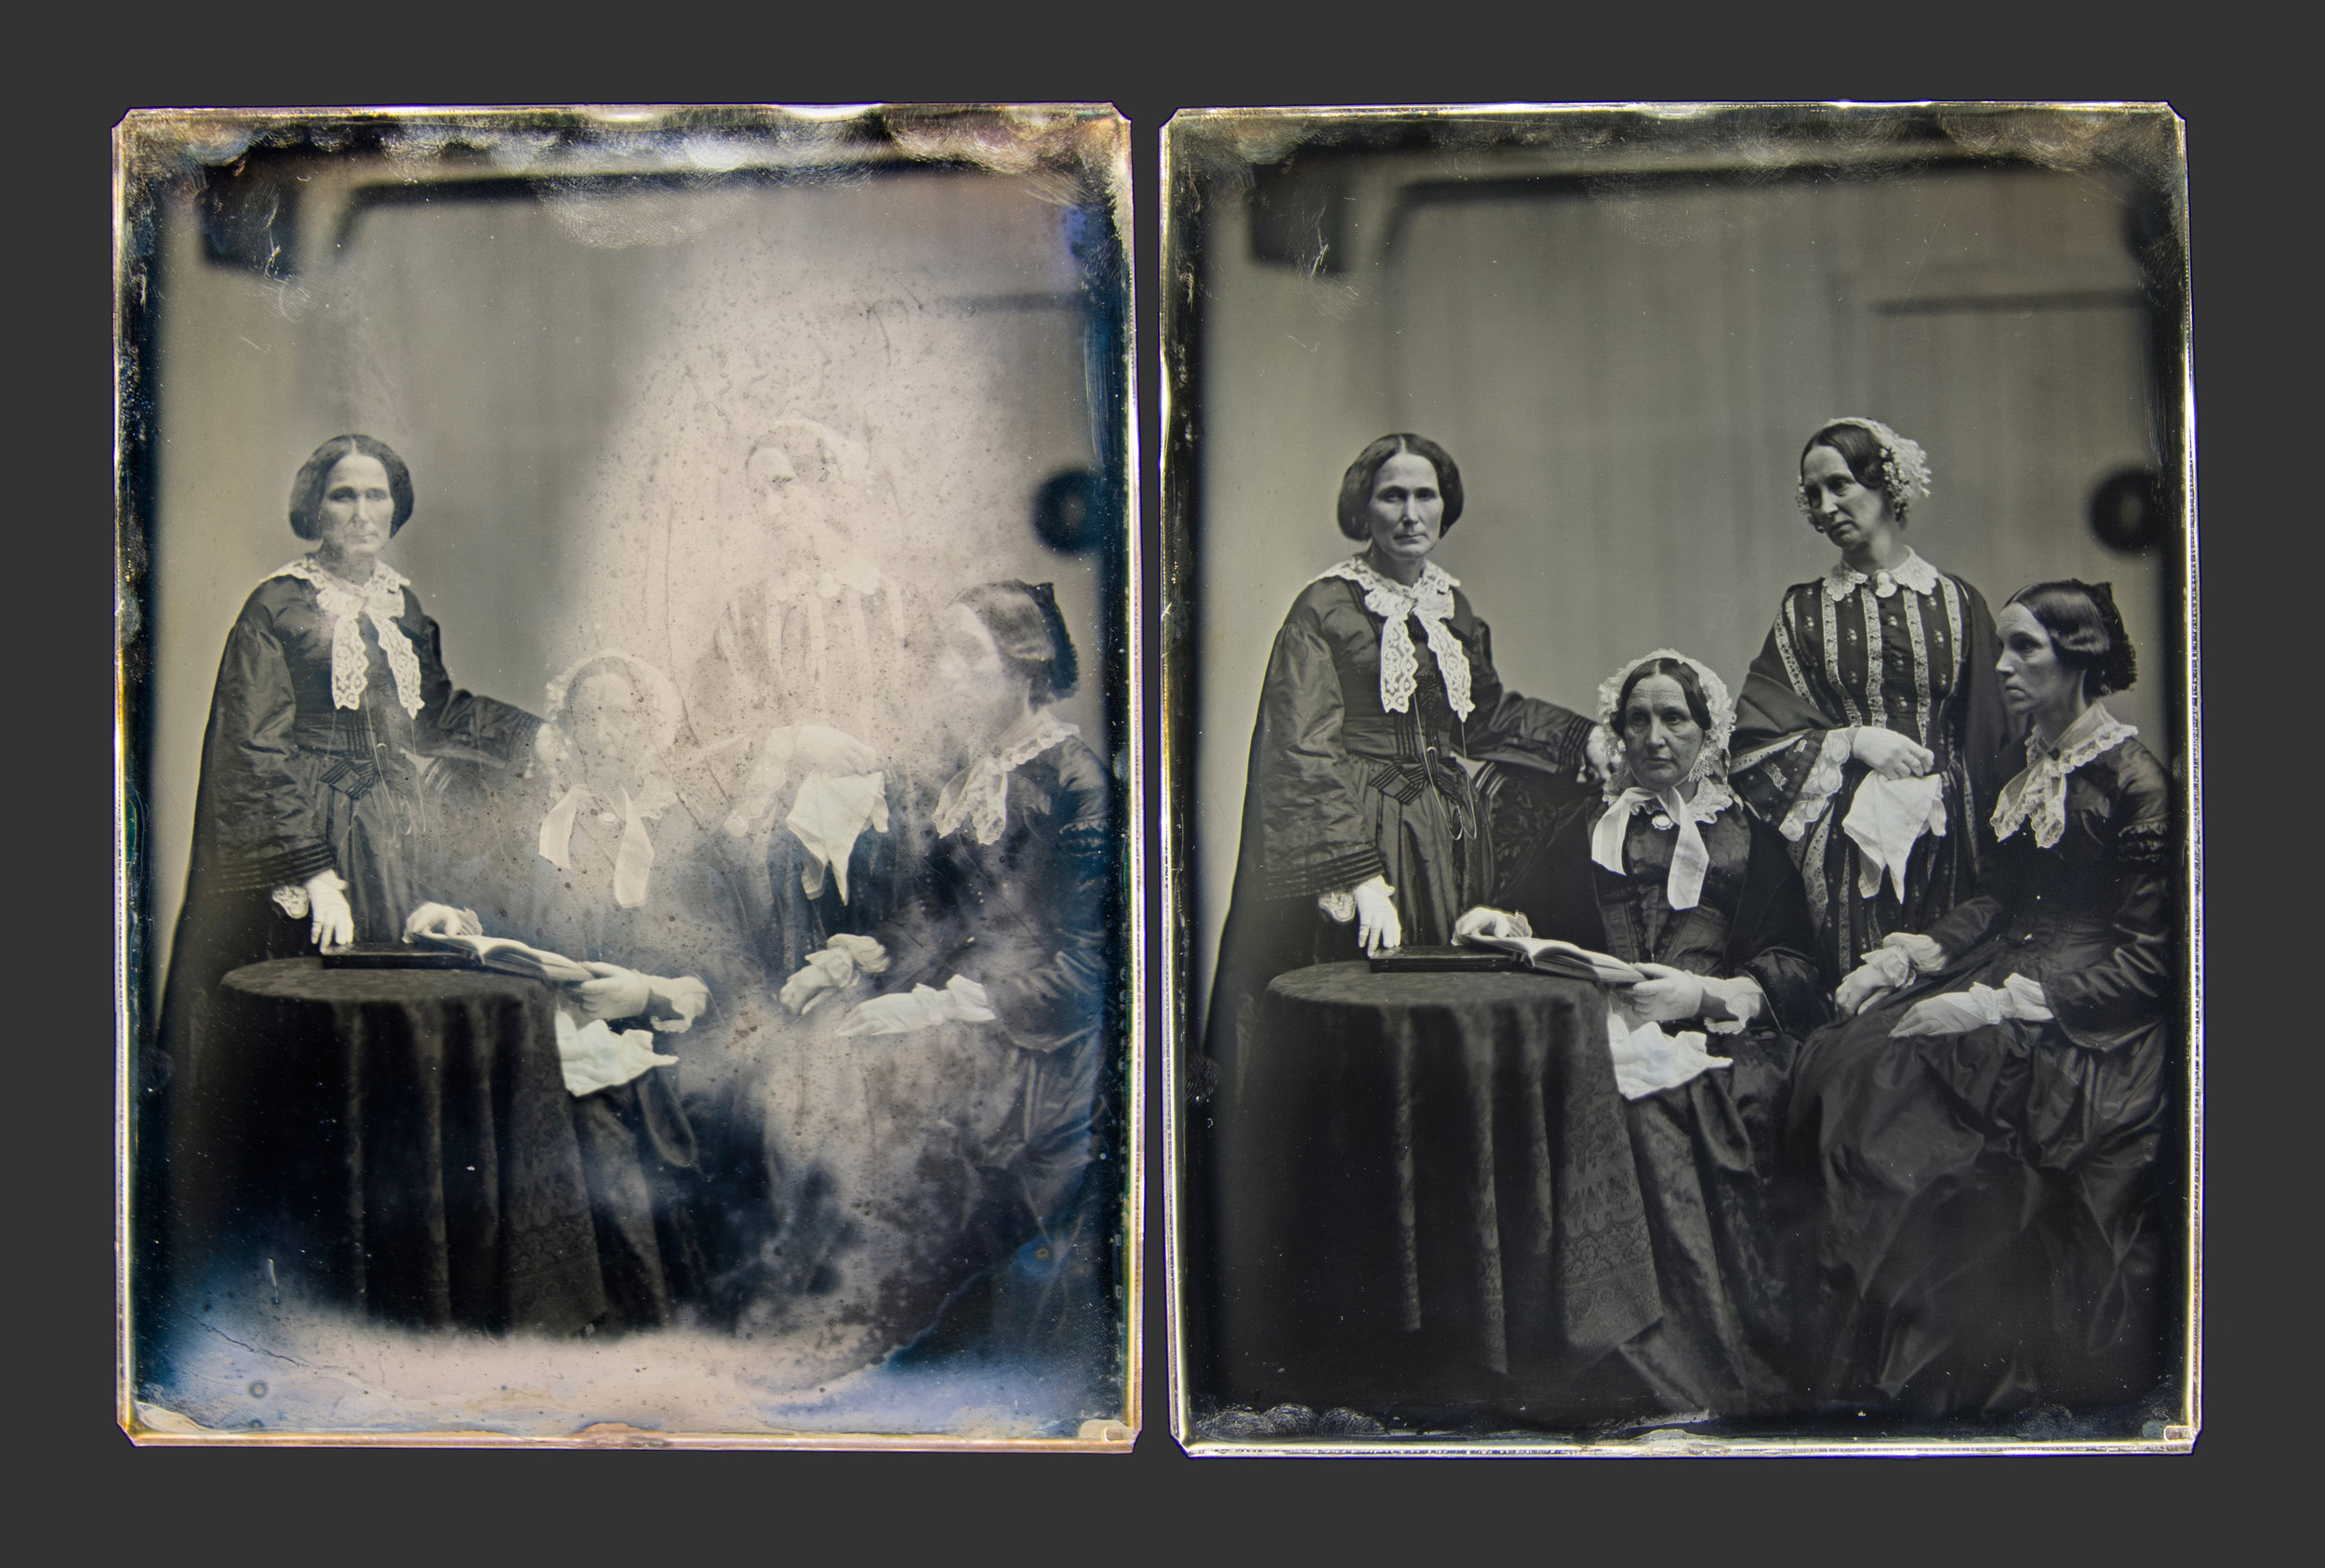 - Southworth & Hawes Whole-plate. Half of a stereo pair - before and after treatment